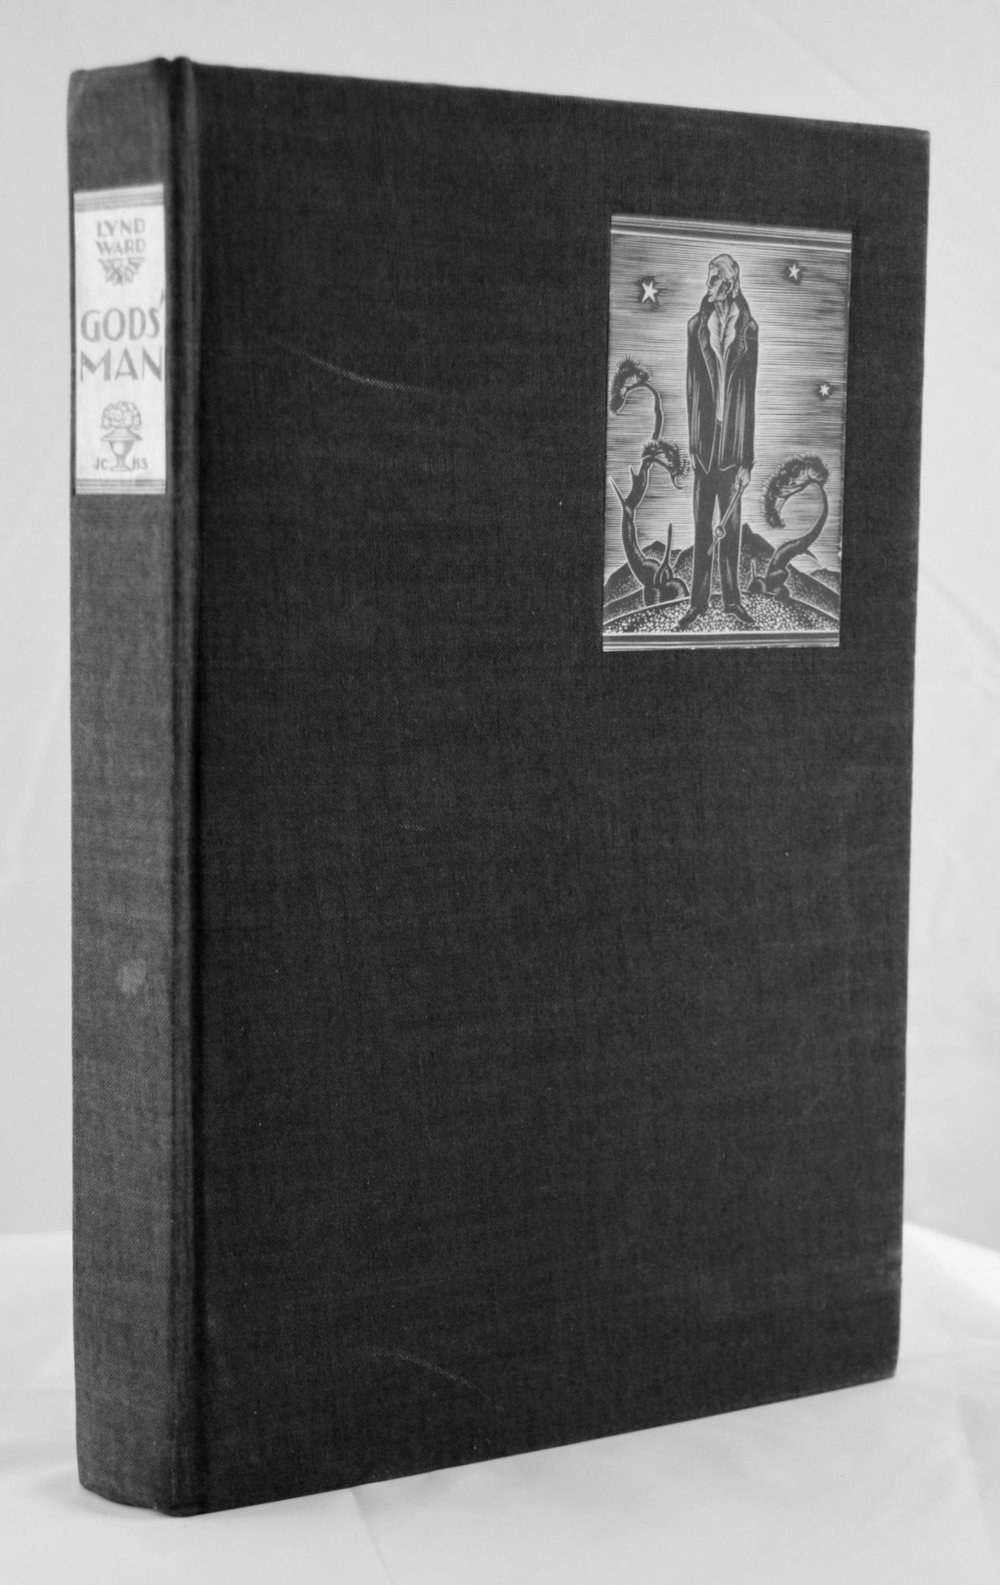 "Lynd Ward: Gods' Man   New York: The Aldus Printers and J. F. Tapley Company for Jonathan Cape & Harrison Smith,  1929. Hardcover, octavo, 6-1/2"" x 9-3/4"". ""Special edition, 409 copies (of which 376 are for sale)"", printed directly from Lynd Ward's original wood engravings. This is number 49. Black cloth with black end papers in exceptionally good condition, with paper labels on spine and front board. One small spot on the spine visible in the accompanying photograph and two light scratches on the front cover. T.e.g.; a few pages have been carelessly opened, resulting in minor tearing to their edges. The binding is tight and square; the pages are crisp and clean; bookplate of Douglas Fairbanks, Jr. on the front paste-down. Signed by Ward on the copyright page. Lacks slip case.       $1,600"